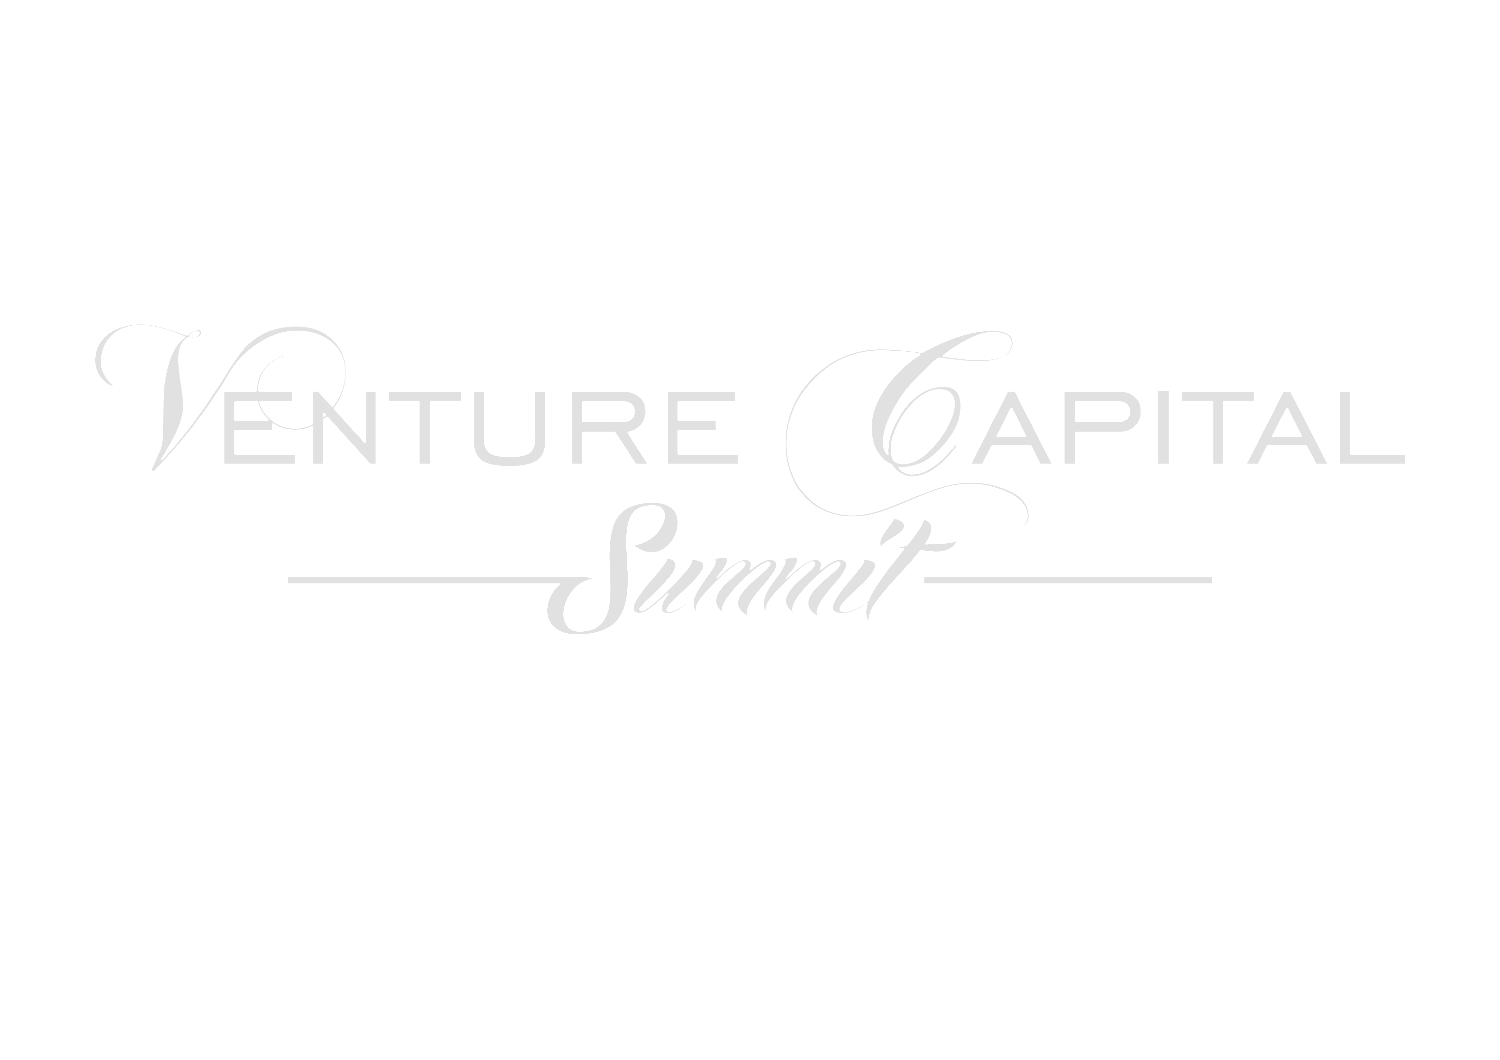 Venture Capital Summit